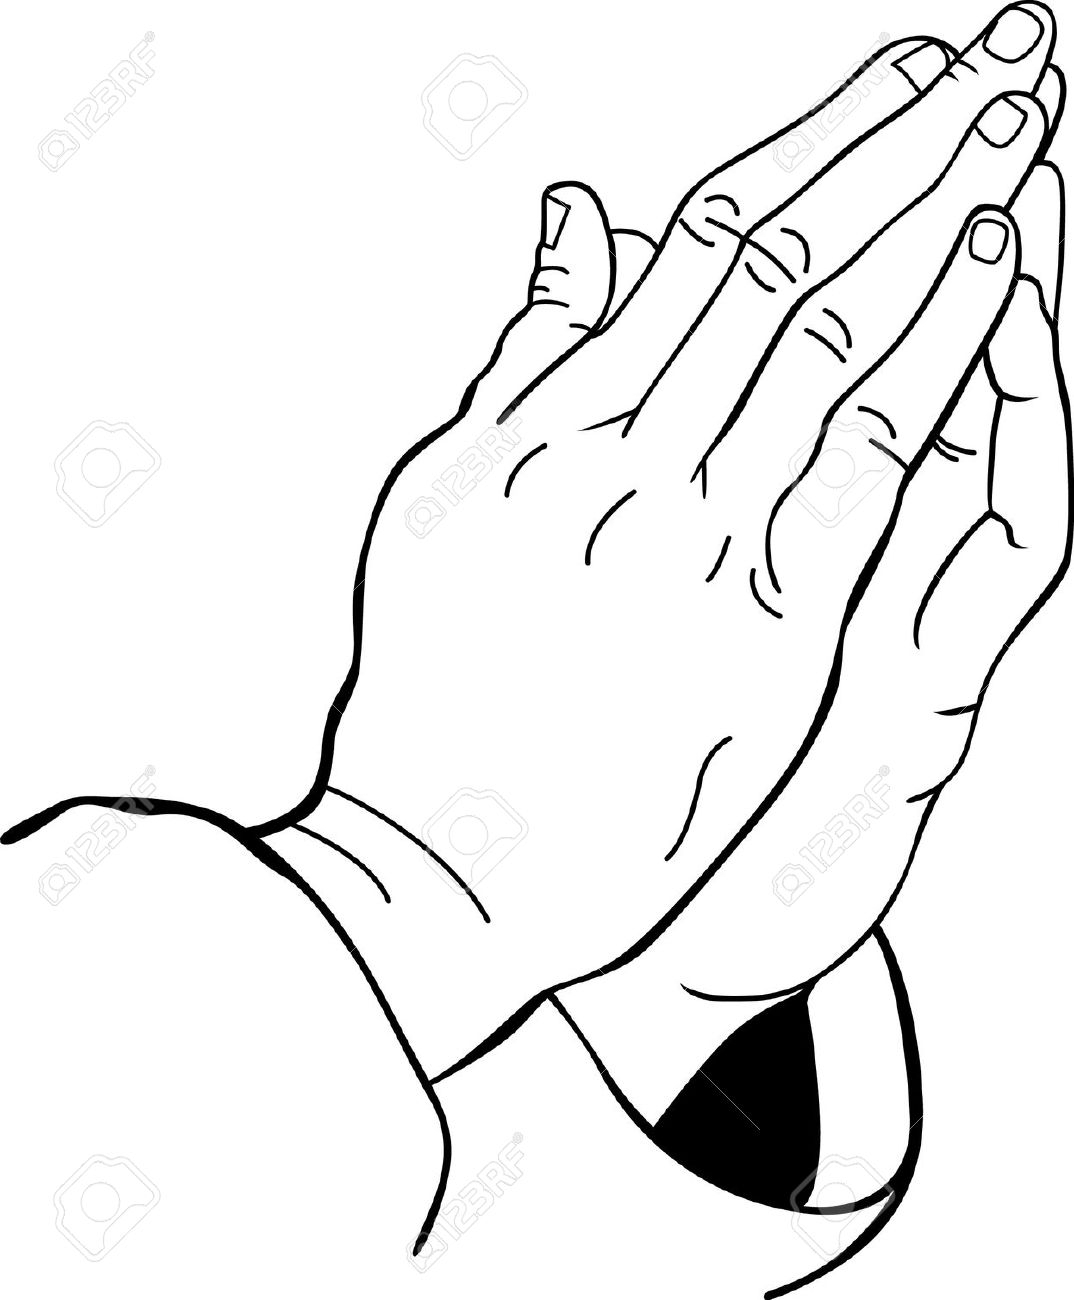 1074x1300 Praying Hands Line Drawing You Entrust Your Religious Teachings